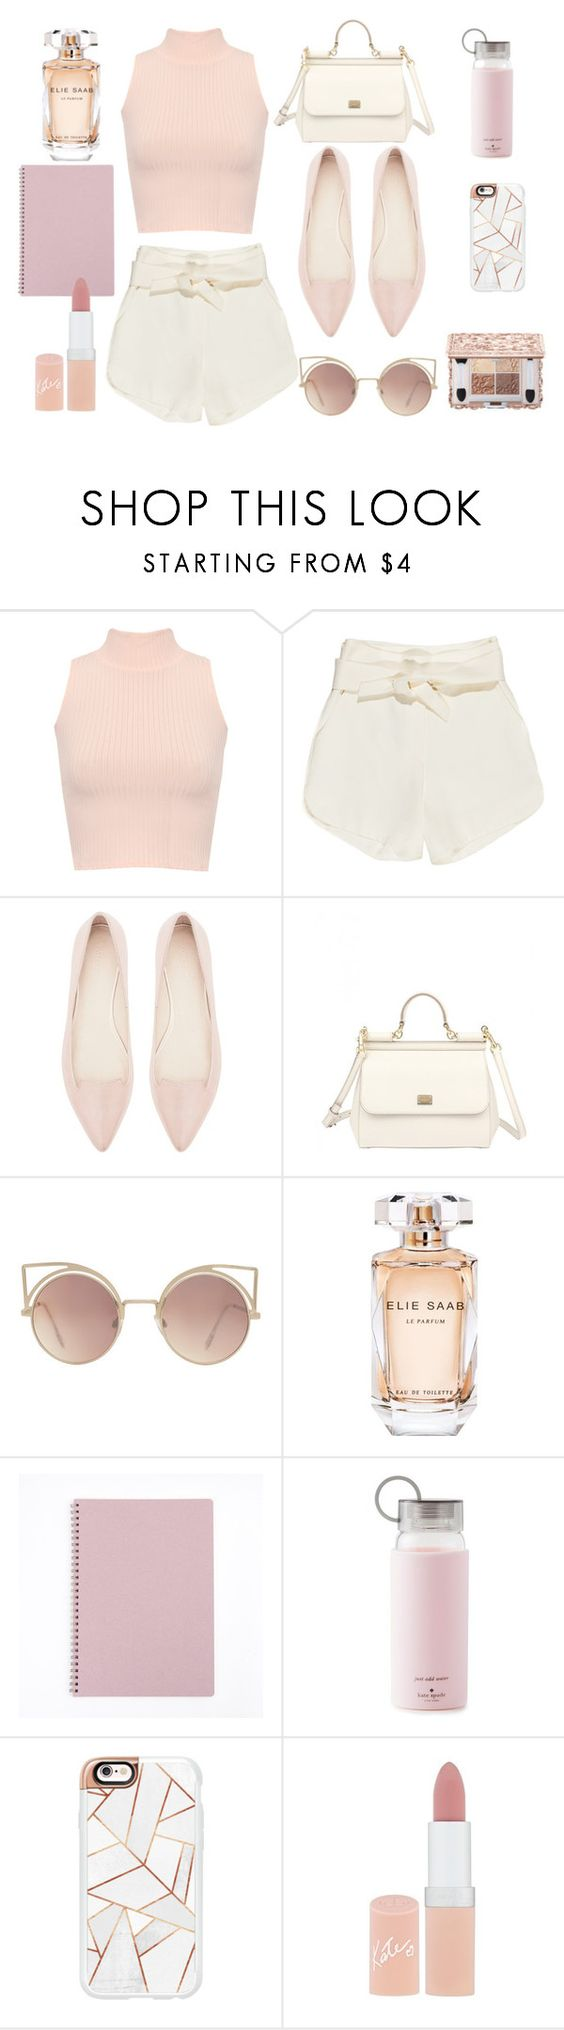 """""""FLATS."""" by valemx ❤ liked on Polyvore featuring WearAll, IRO, Witchery, Dolce&Gabbana, MANGO, Elie Saab, Kate Spade, Casetify and Rimmel"""